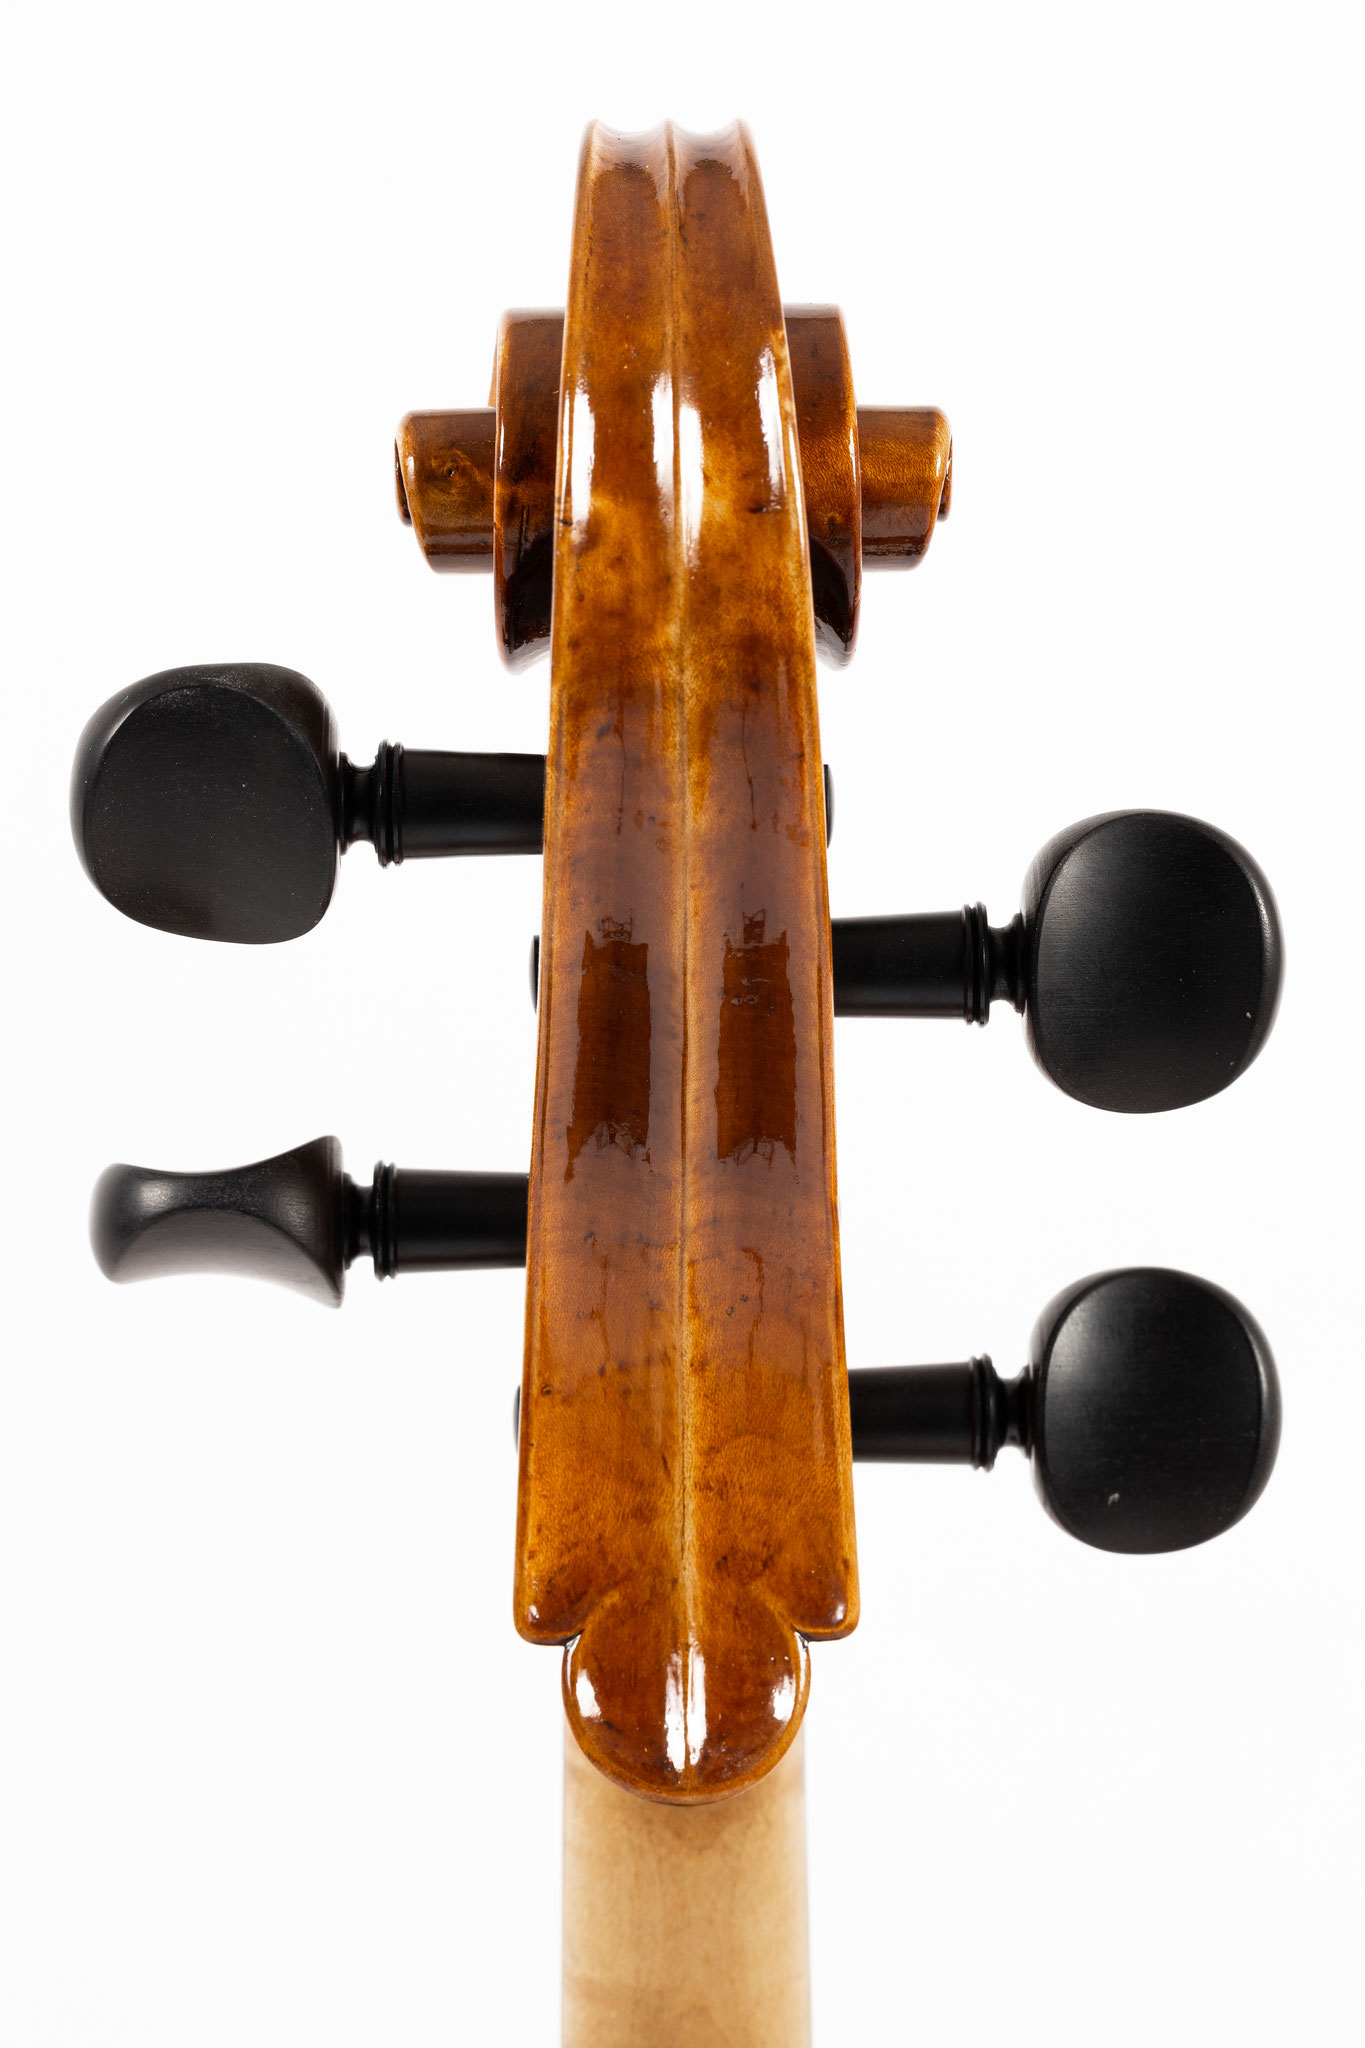 Baroque Cello after Jacobus Stainer (2020/VD), Photo: VDB Photography